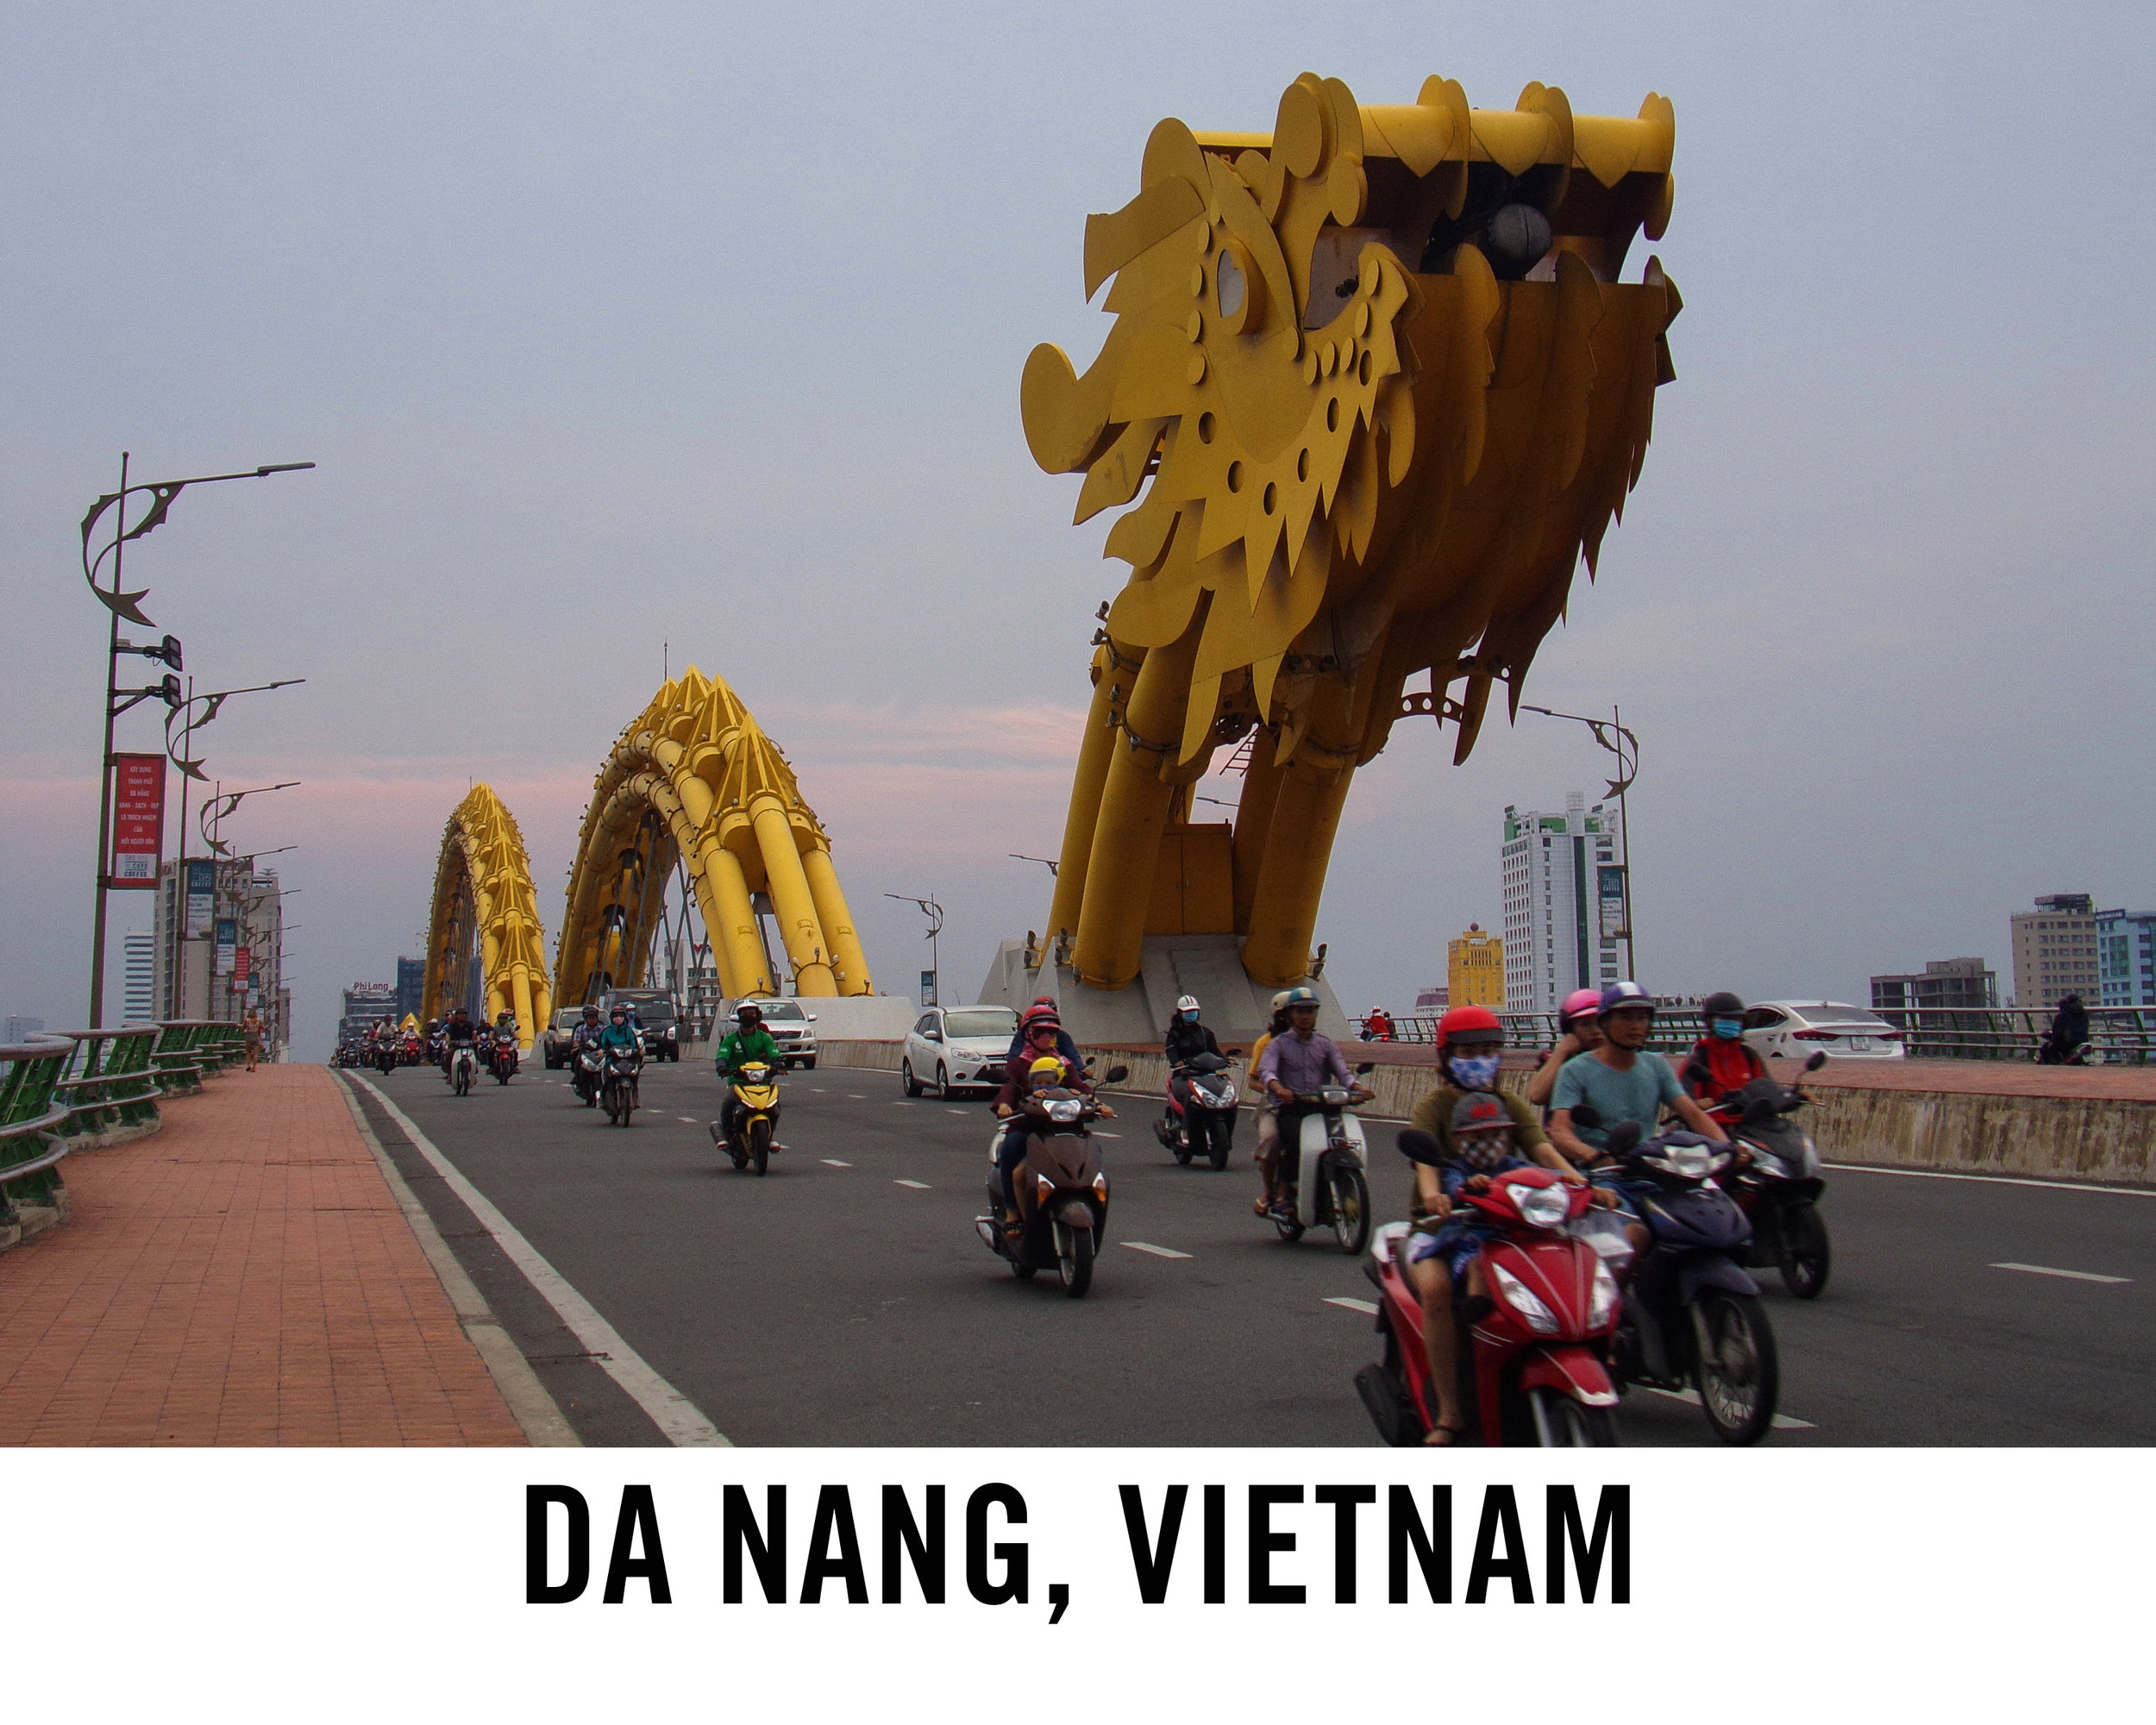 Da Nang_Web Graphic copy.jpg